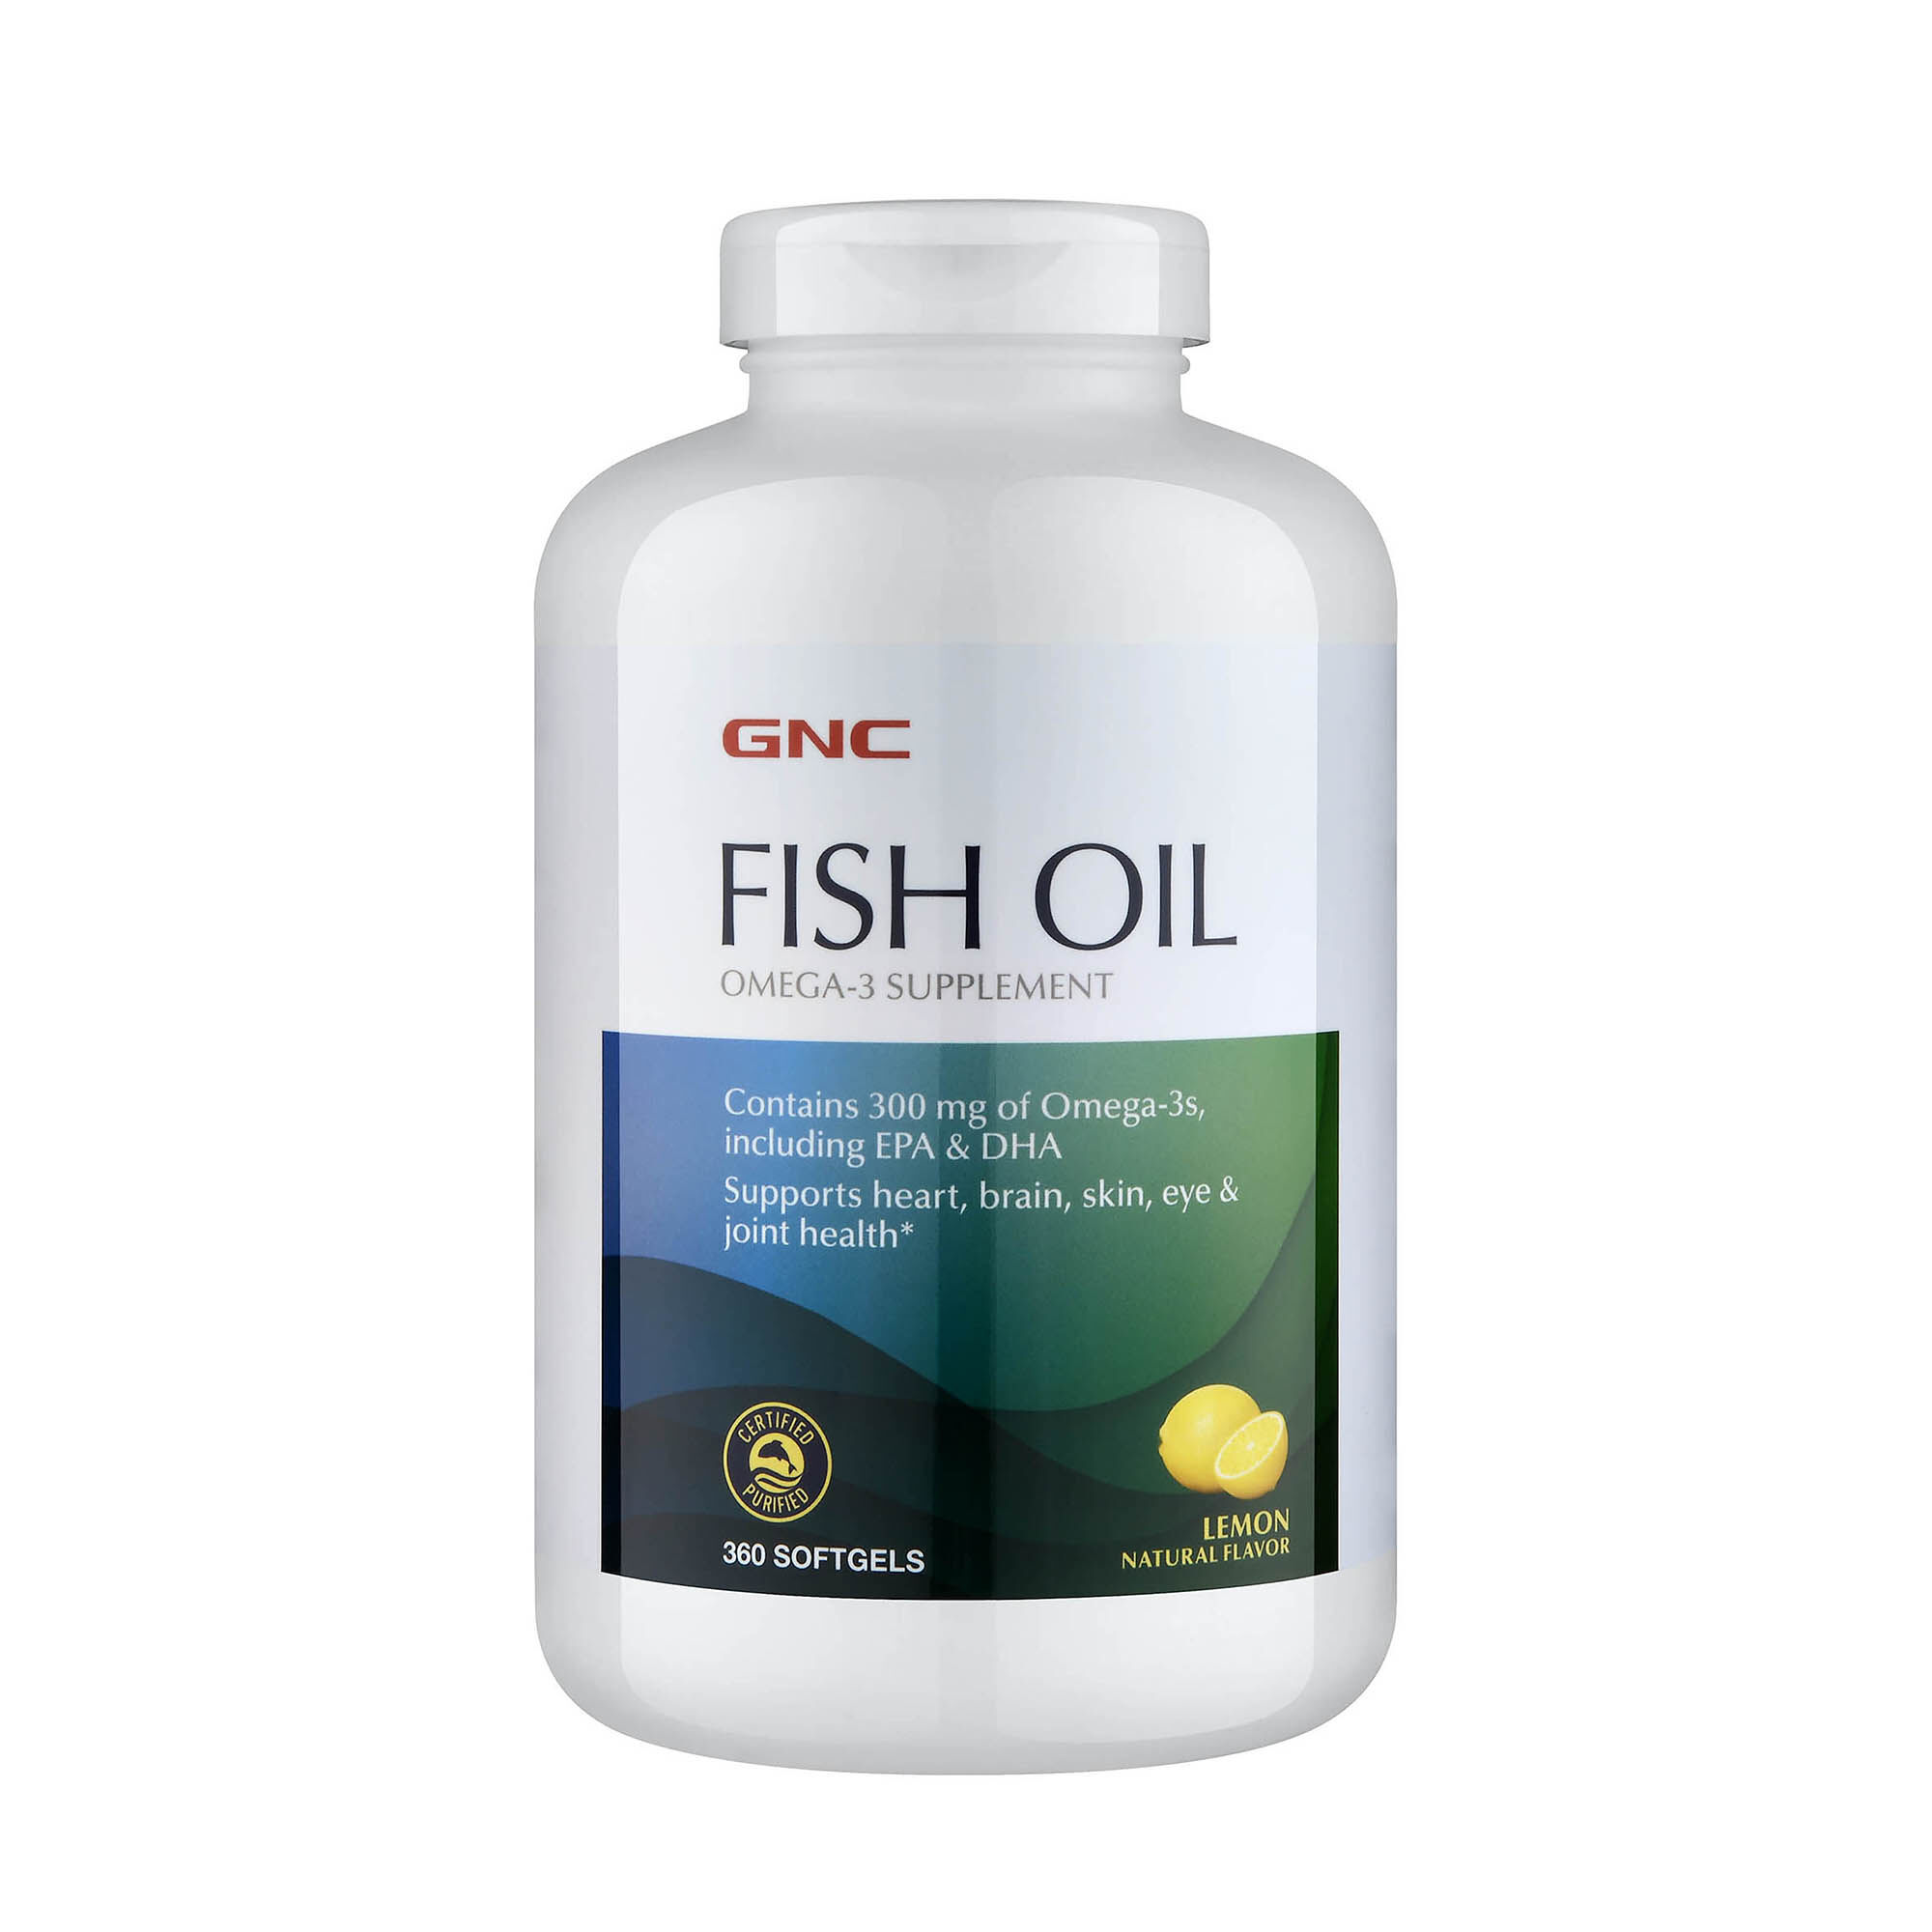 Gnc fish oil safe during pregnancy all the best fish in 2018 for Fish oil pregnancy